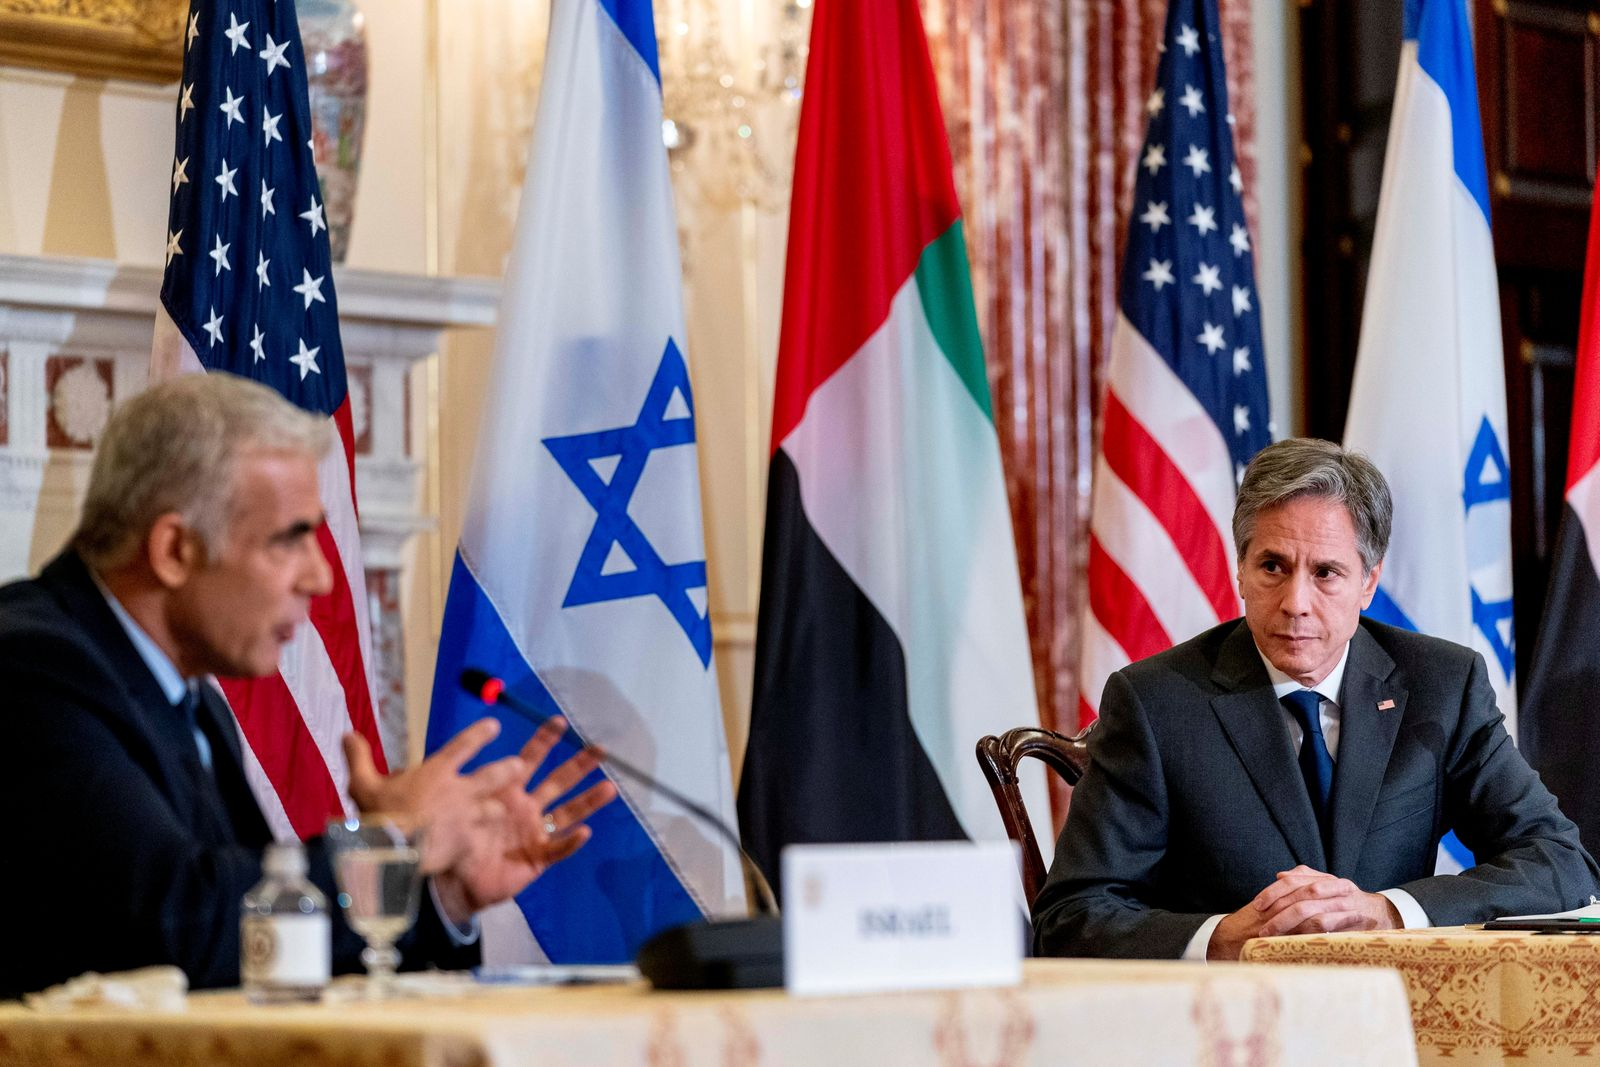 U.S.'s Blinken hosts trilateral meeting with Israel's Lapid and UAE's Bin Zayed